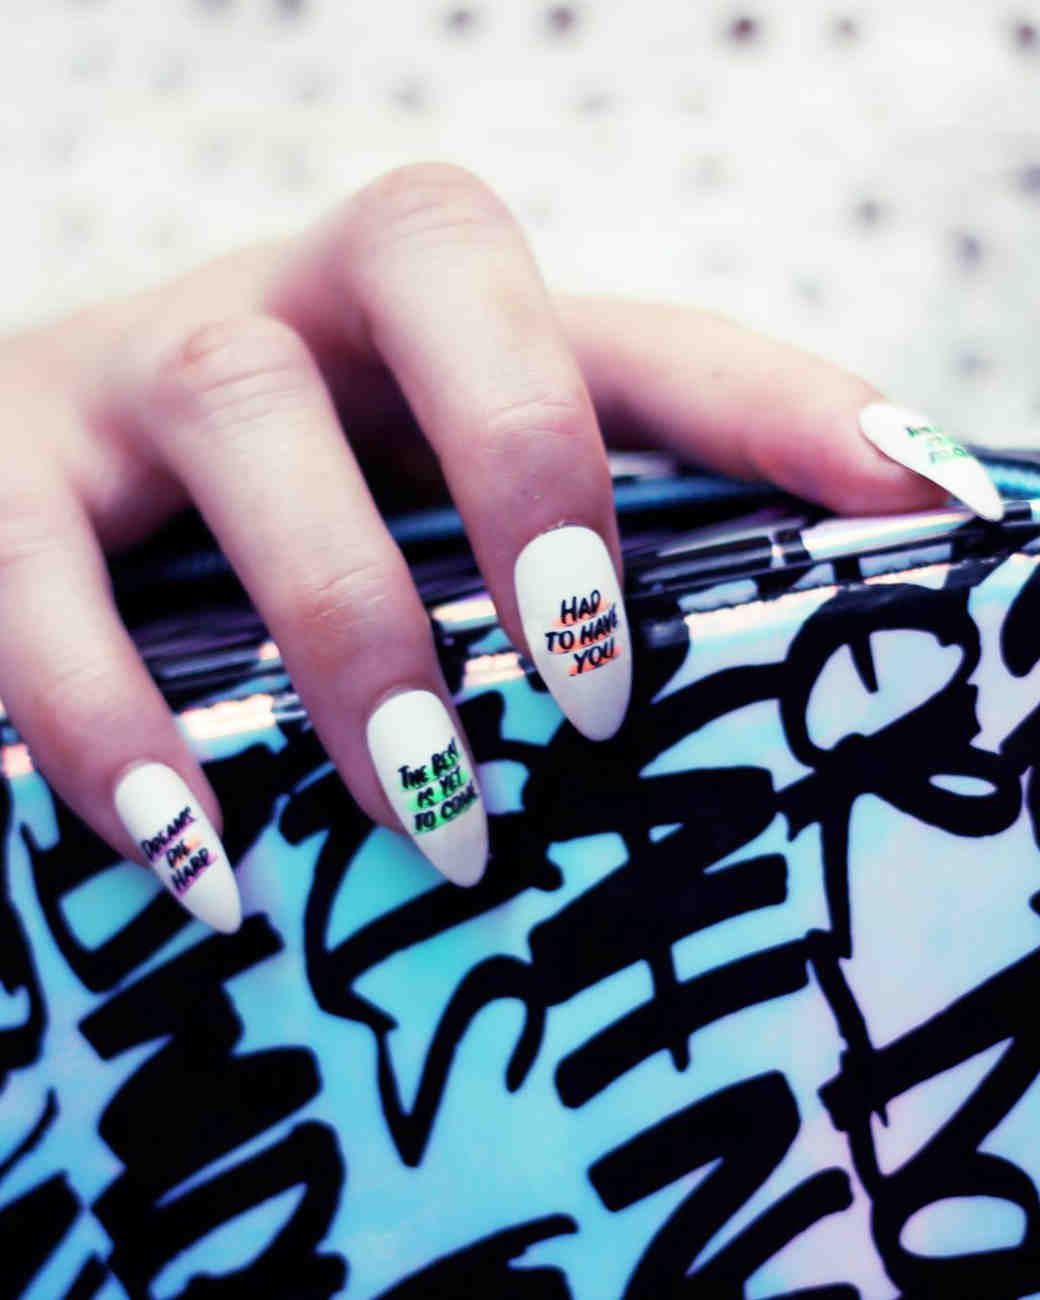 marry-me-martha-robert-pattinson-fka-twigs-wah-nails-0515.jpg